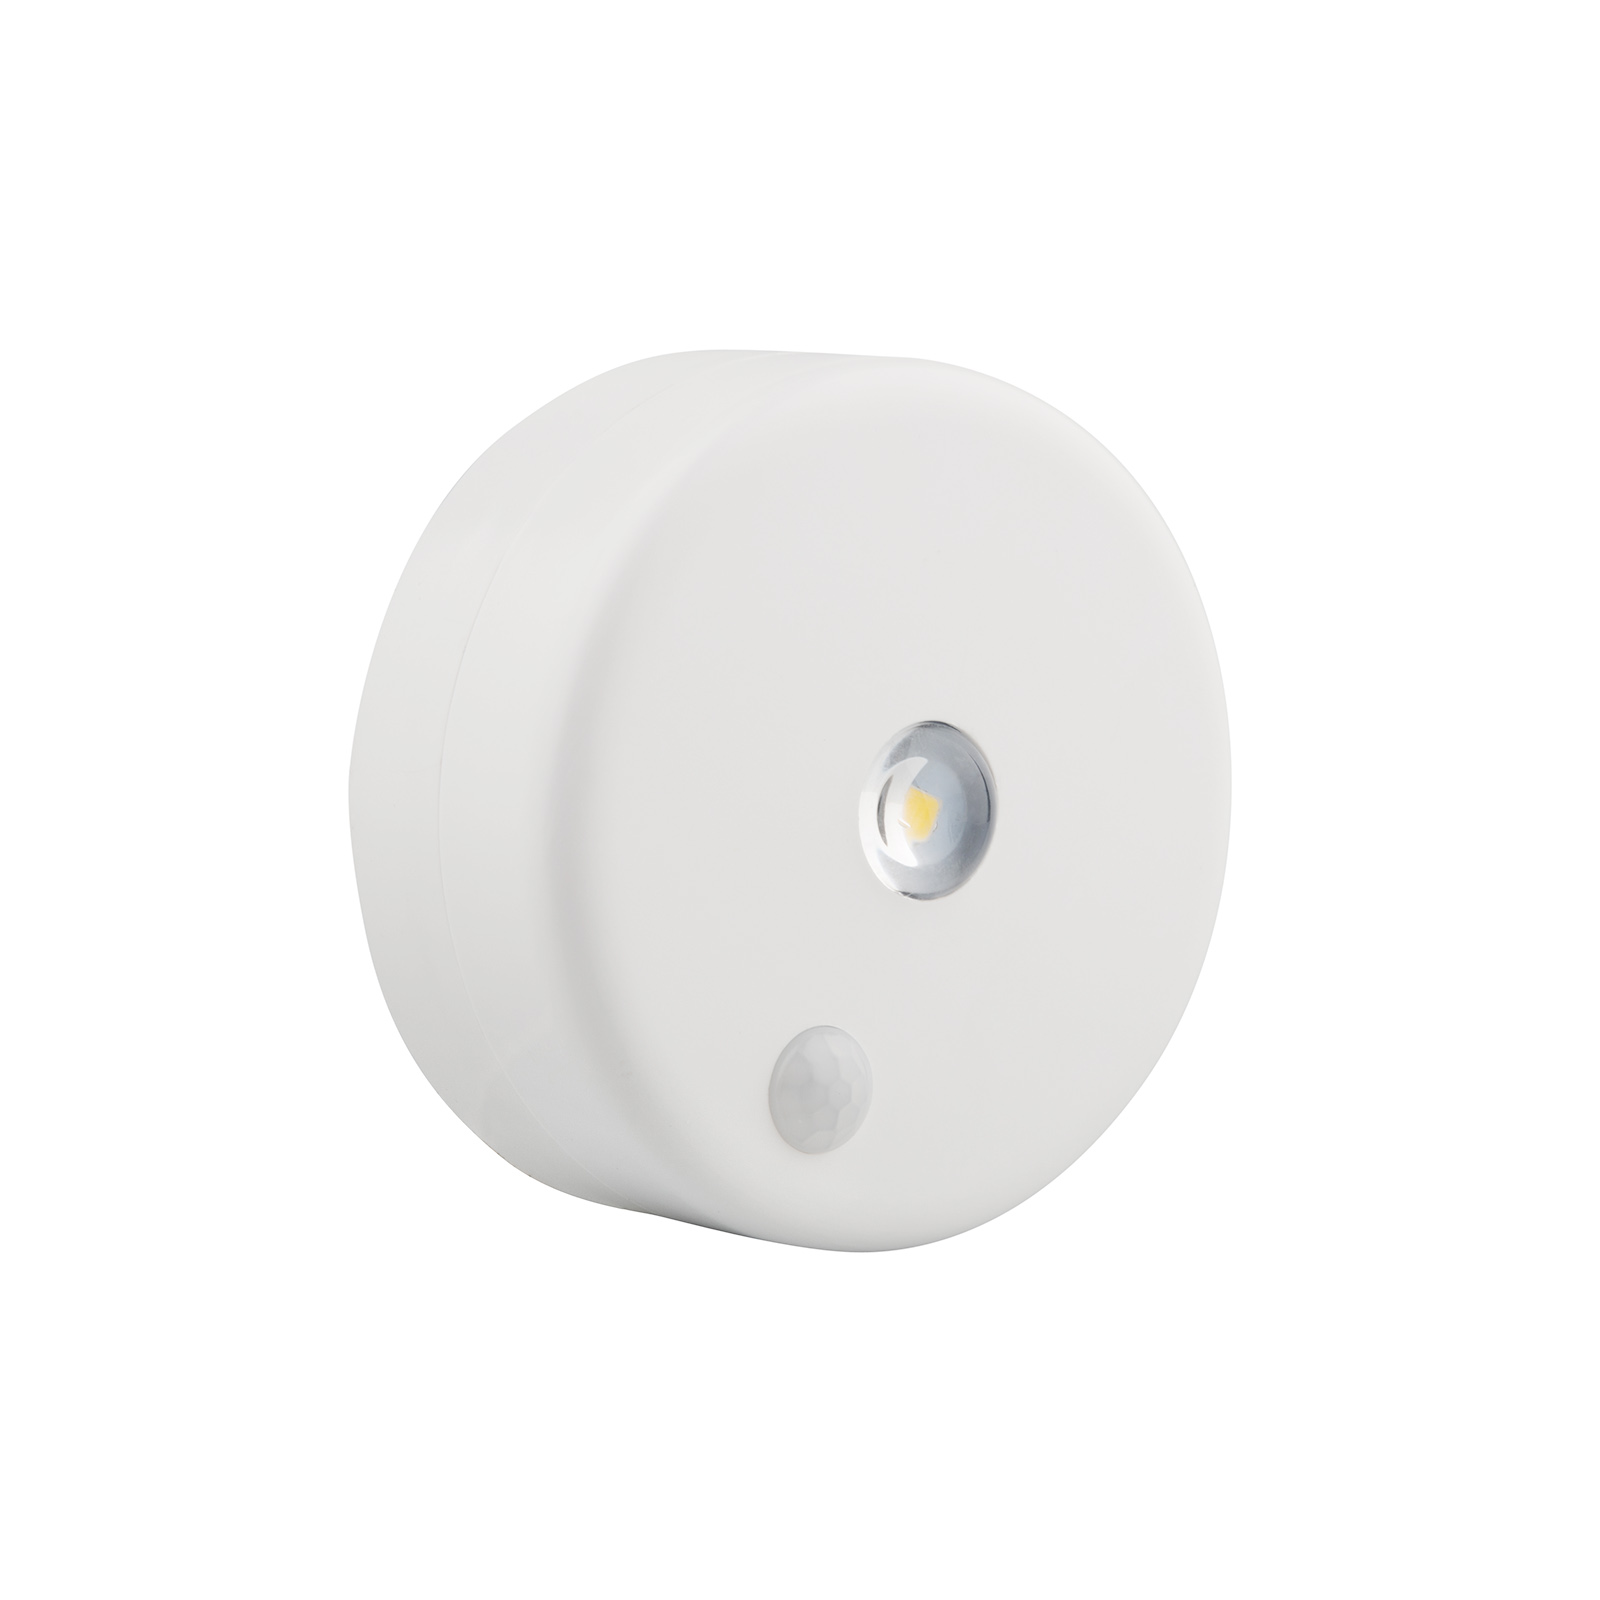 Ora LED Wireless Motion Sensor Night Light (White)